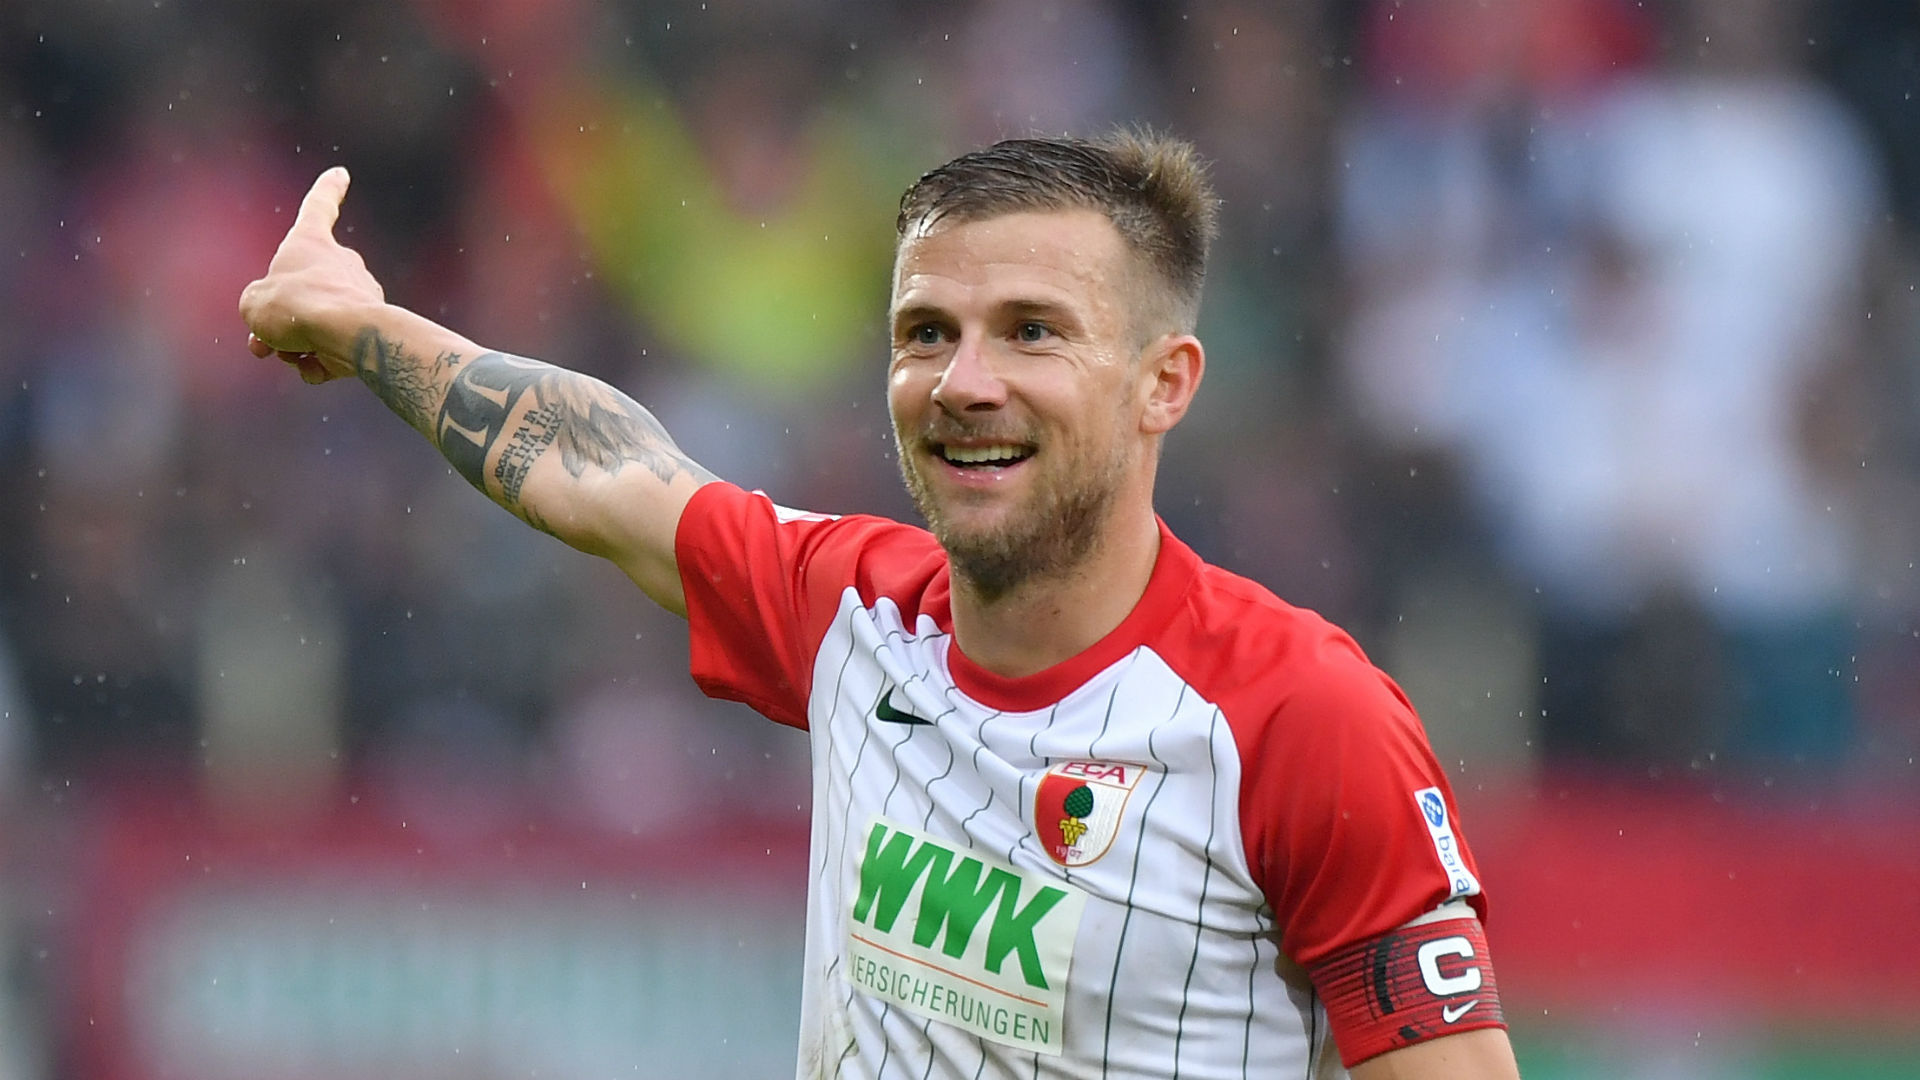 Augsburg captain Baier called to explain obscene gesture